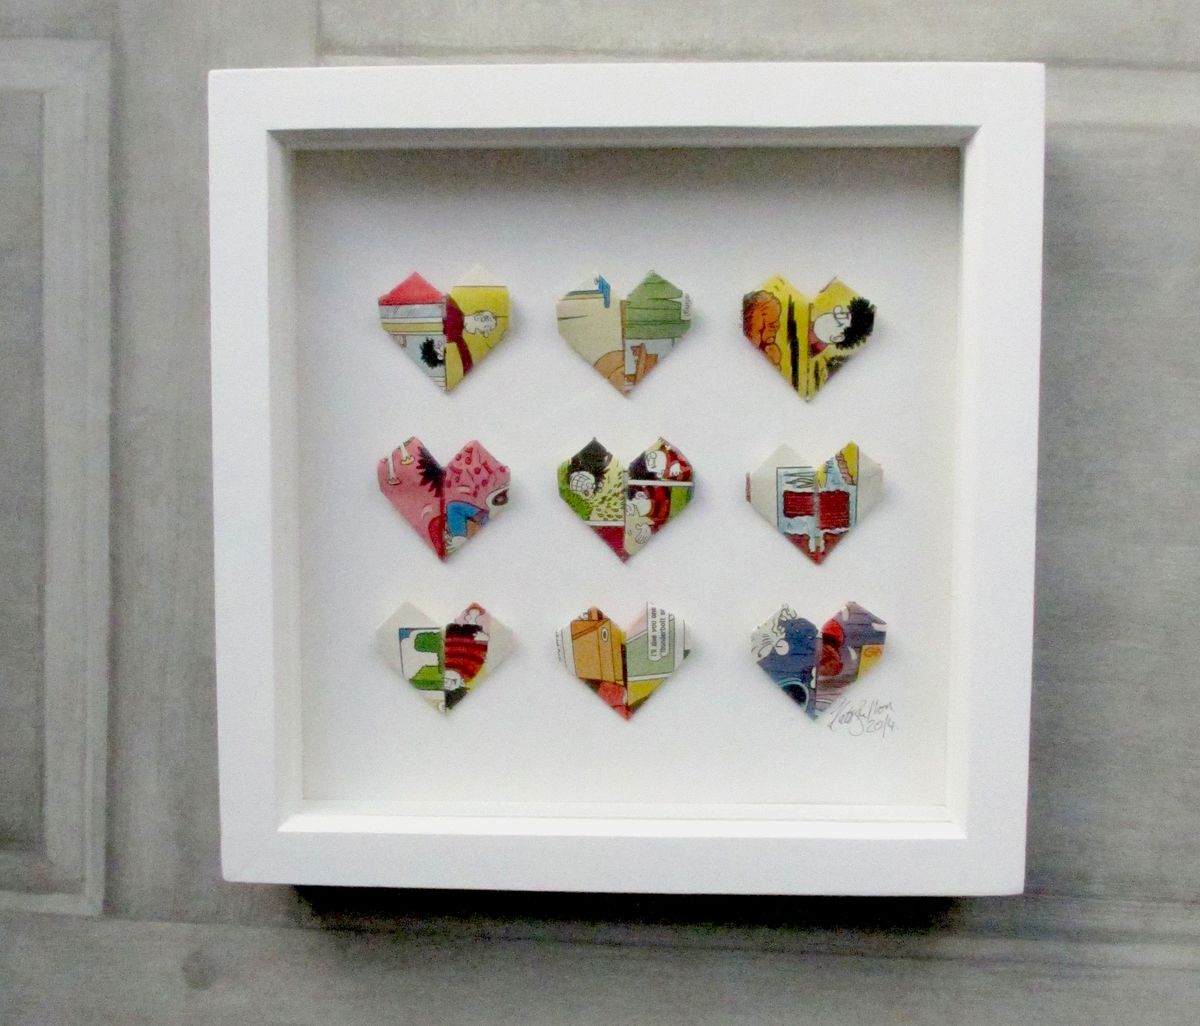 Paper Heart Wall Art - product image